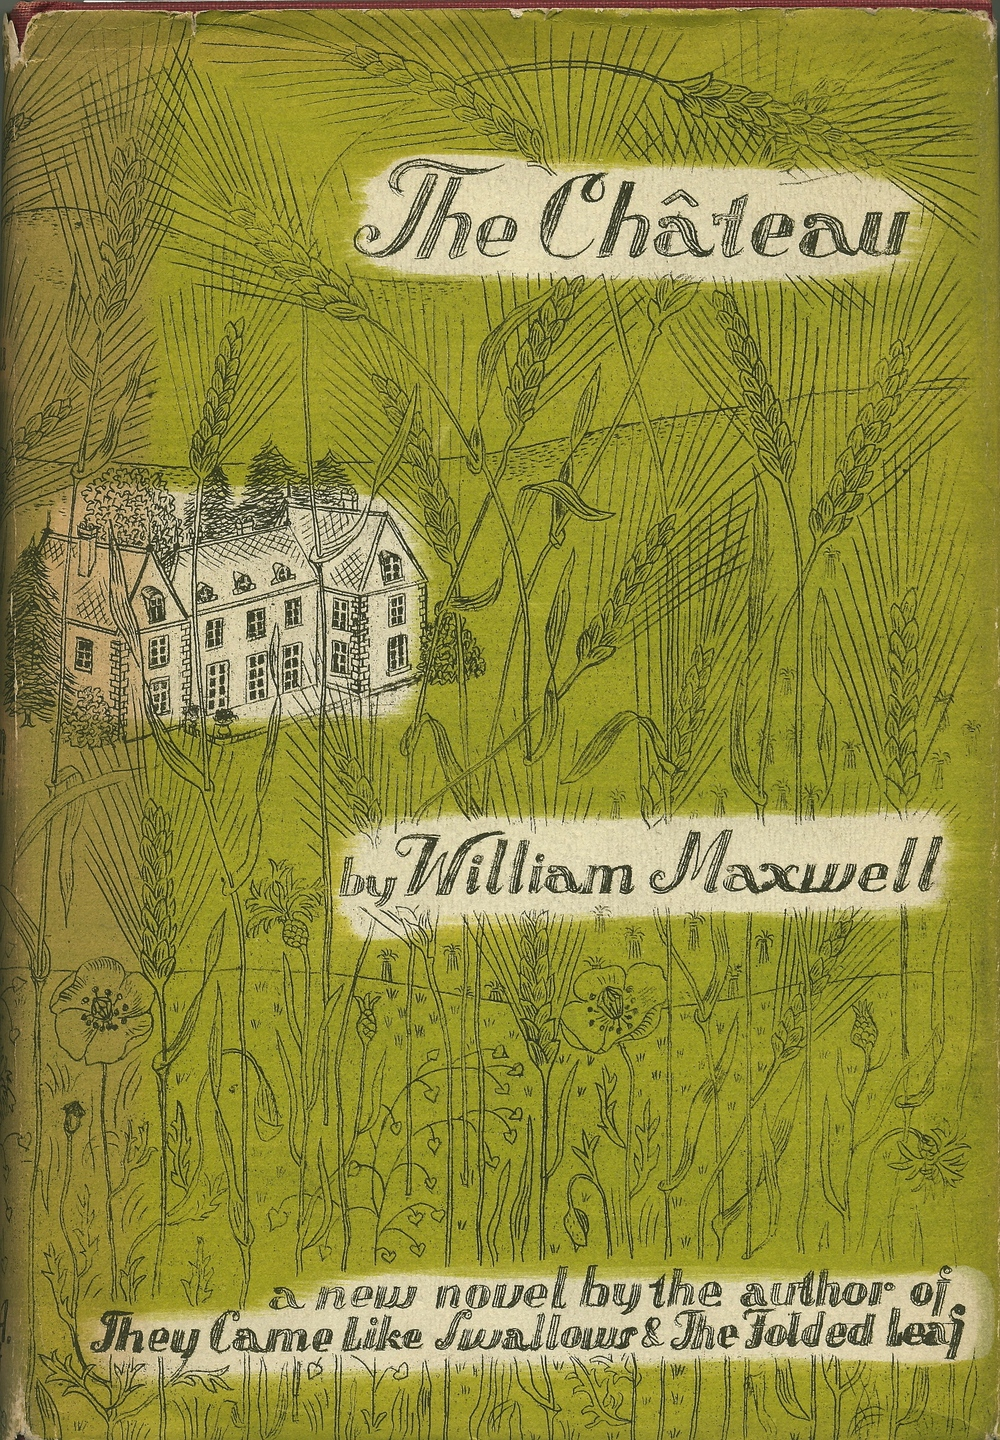 My copy of The Château by William Maxwell 1962, jacket by Ilonka Karasz